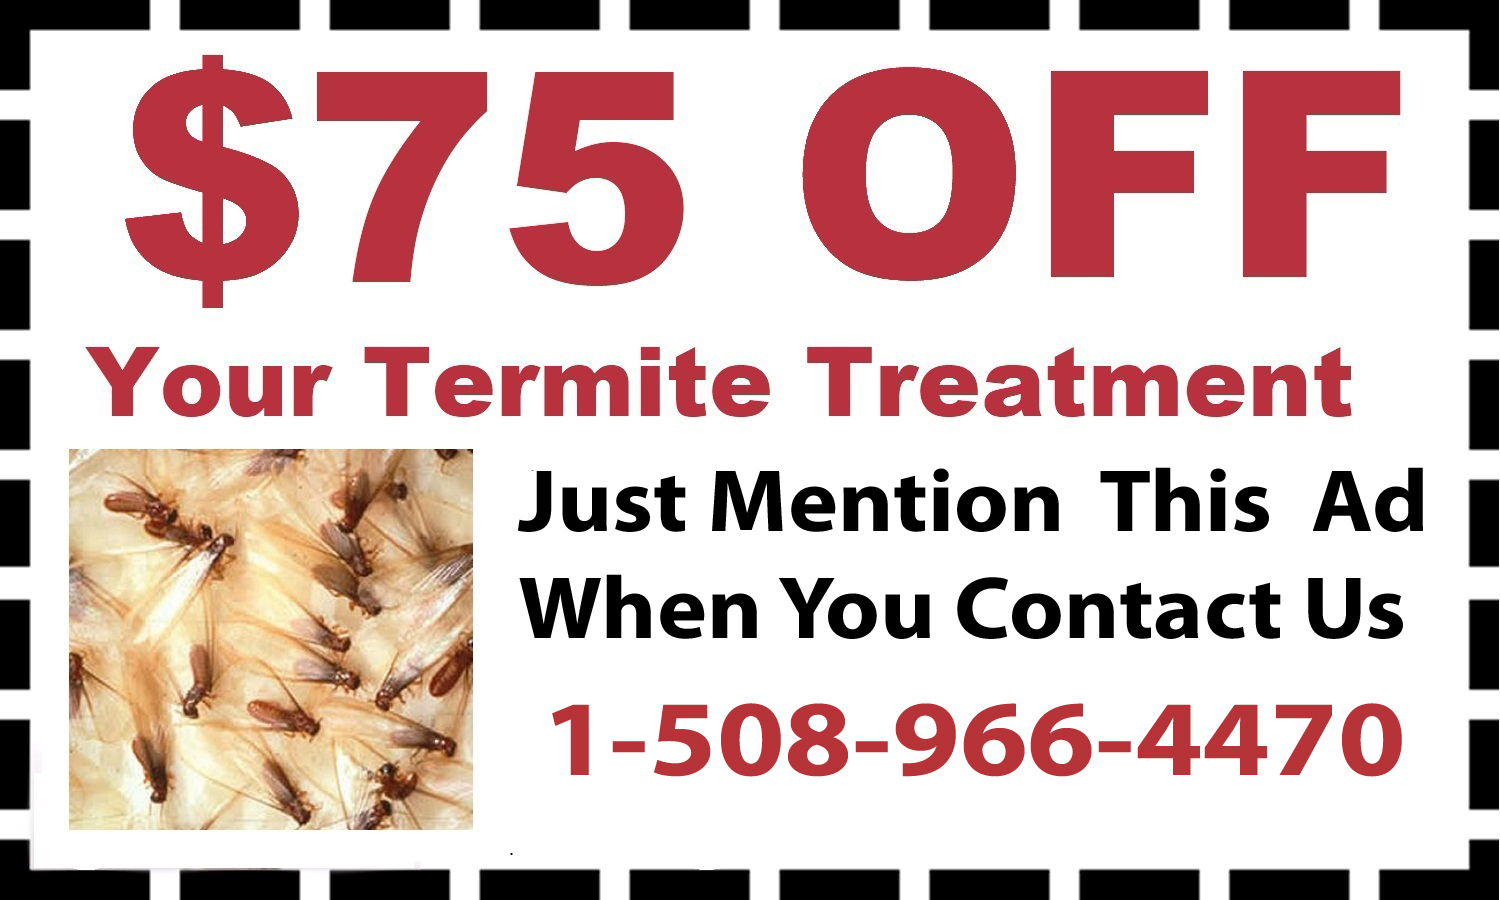 Termite Pest Control in Westwood, MA